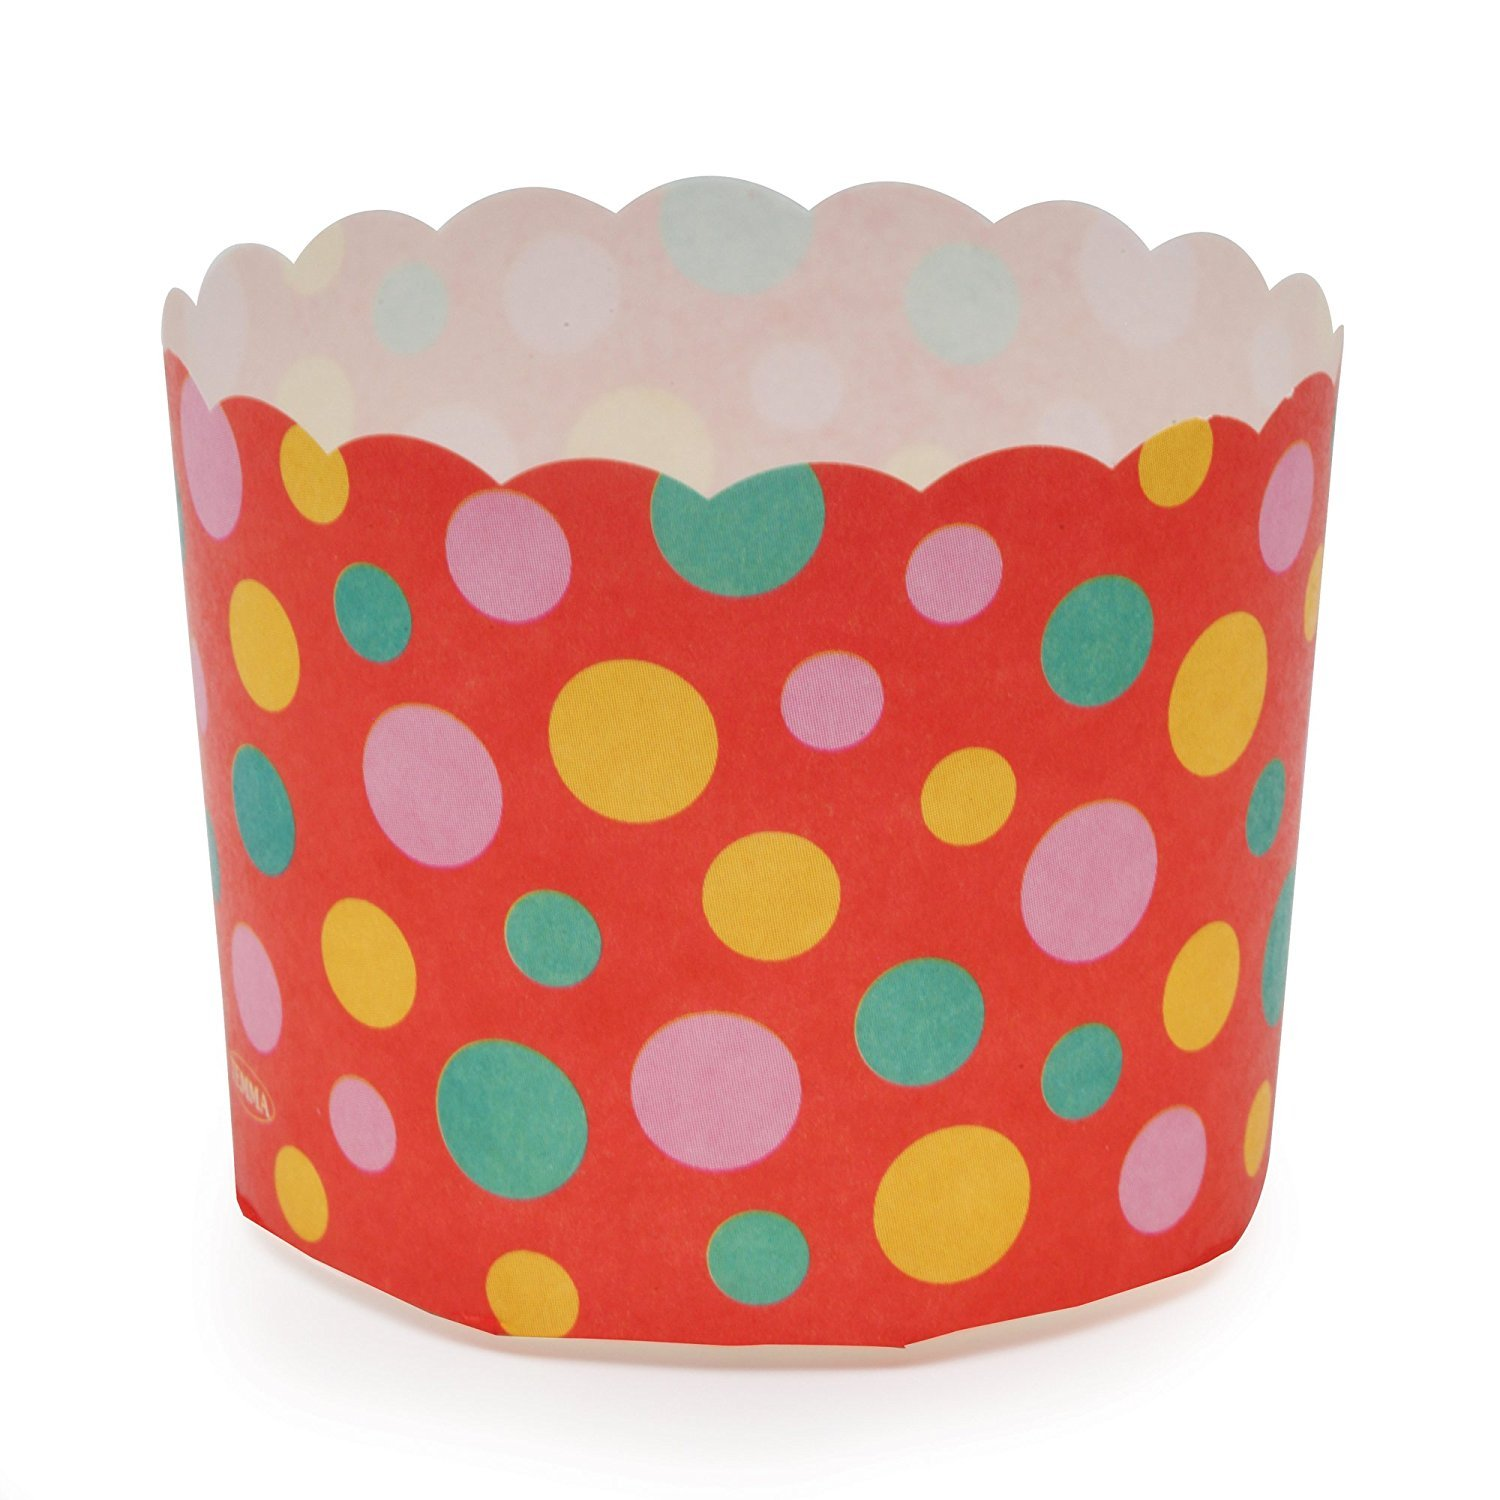 Welcome Home Brands MS8801 Red Dot Paper Baking Cup 5.1-Ounce Volume, 2.3 Inch Diameter x 2 Inch High - Pack of 100 by Welcome Home Brands (Image #1)